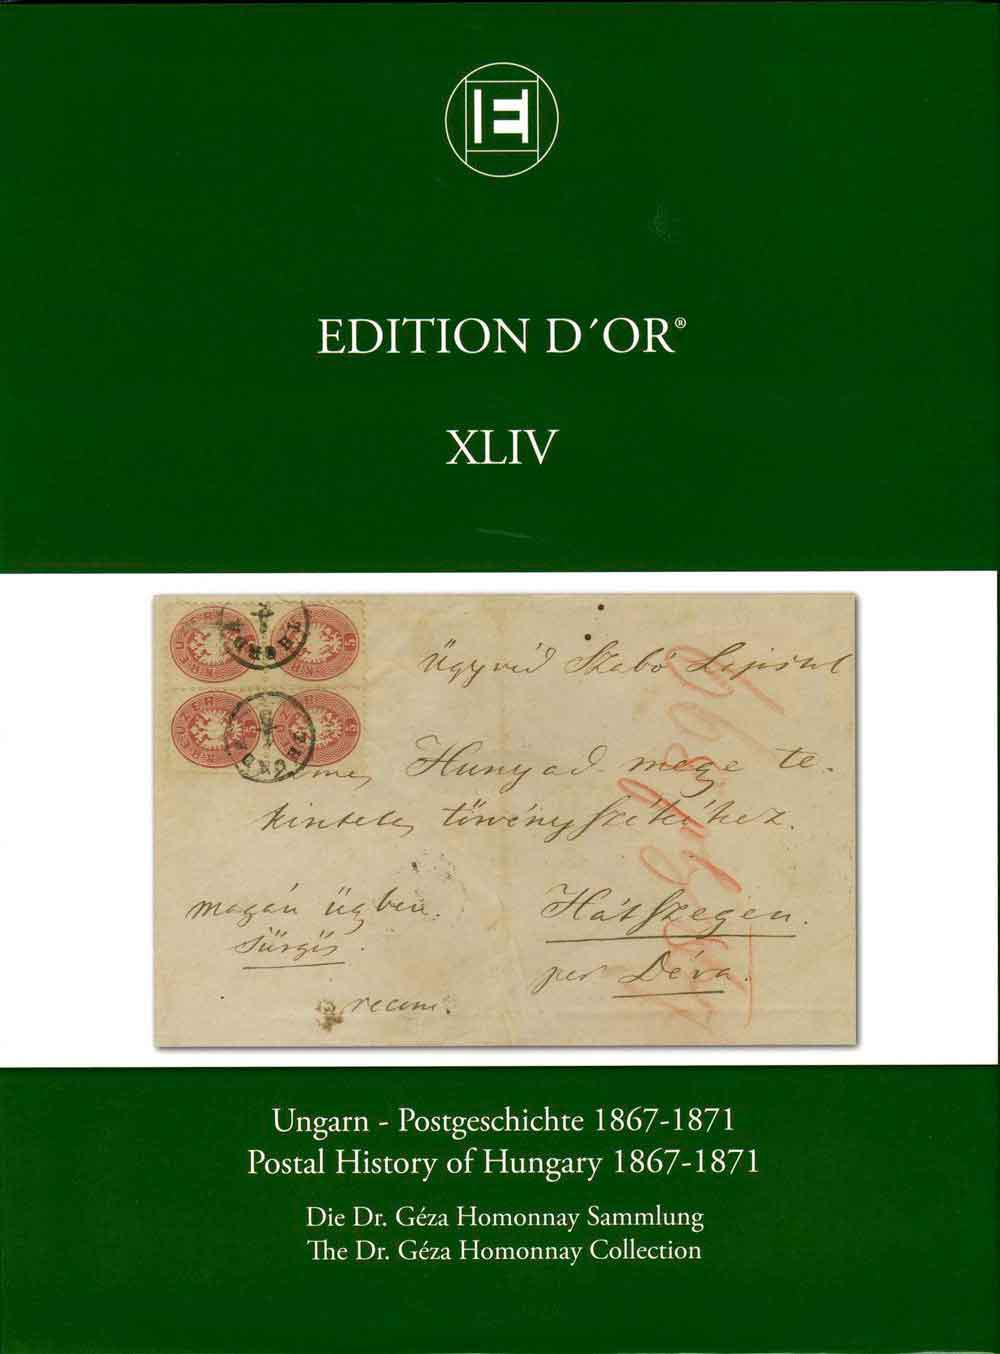 Vol. 44: Postal History of Hungary 1867-1871 • The Dr. Géza Homonnay Collection